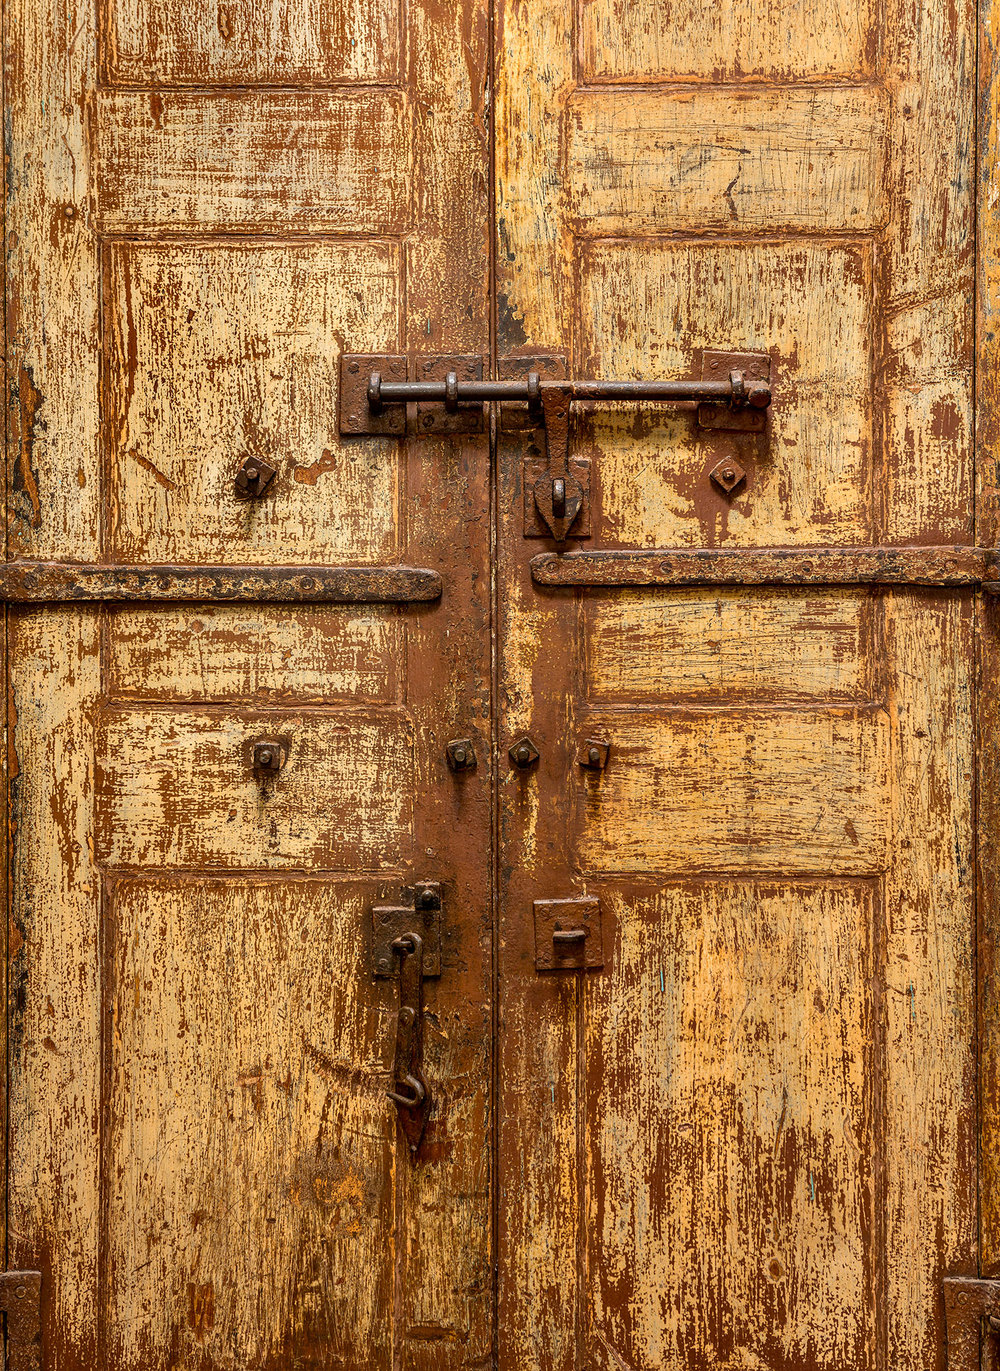 MecklerPhoto_door-1763_F.jpg